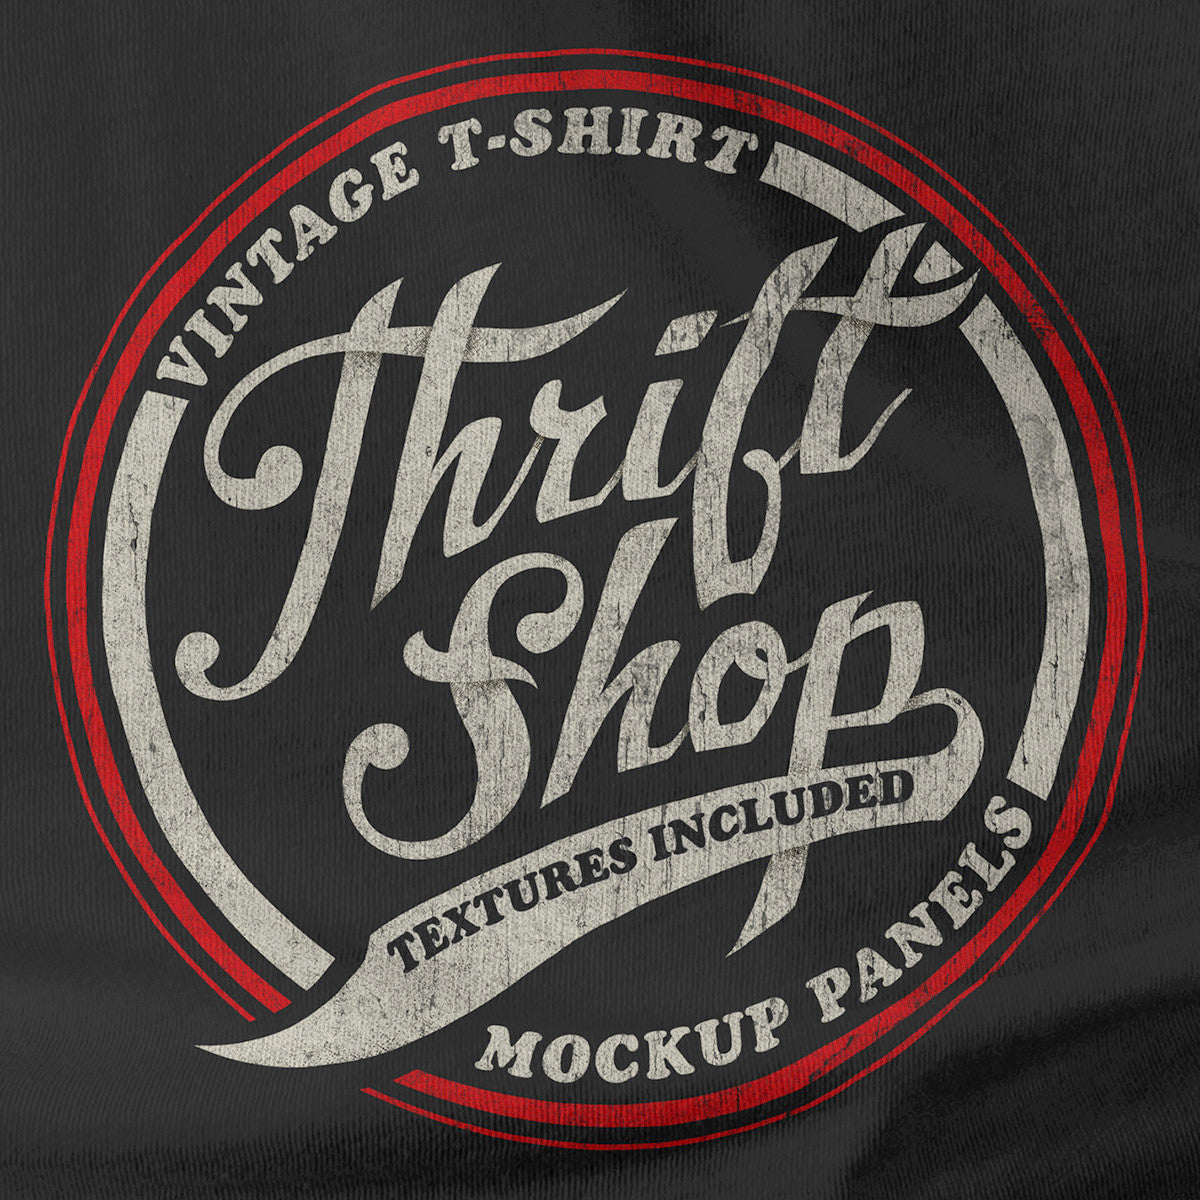 ef75b1e5 ... Thrift Shop for Photoshop - Make your T-Shirt Graphics Look like Real  Vintage Designs ...